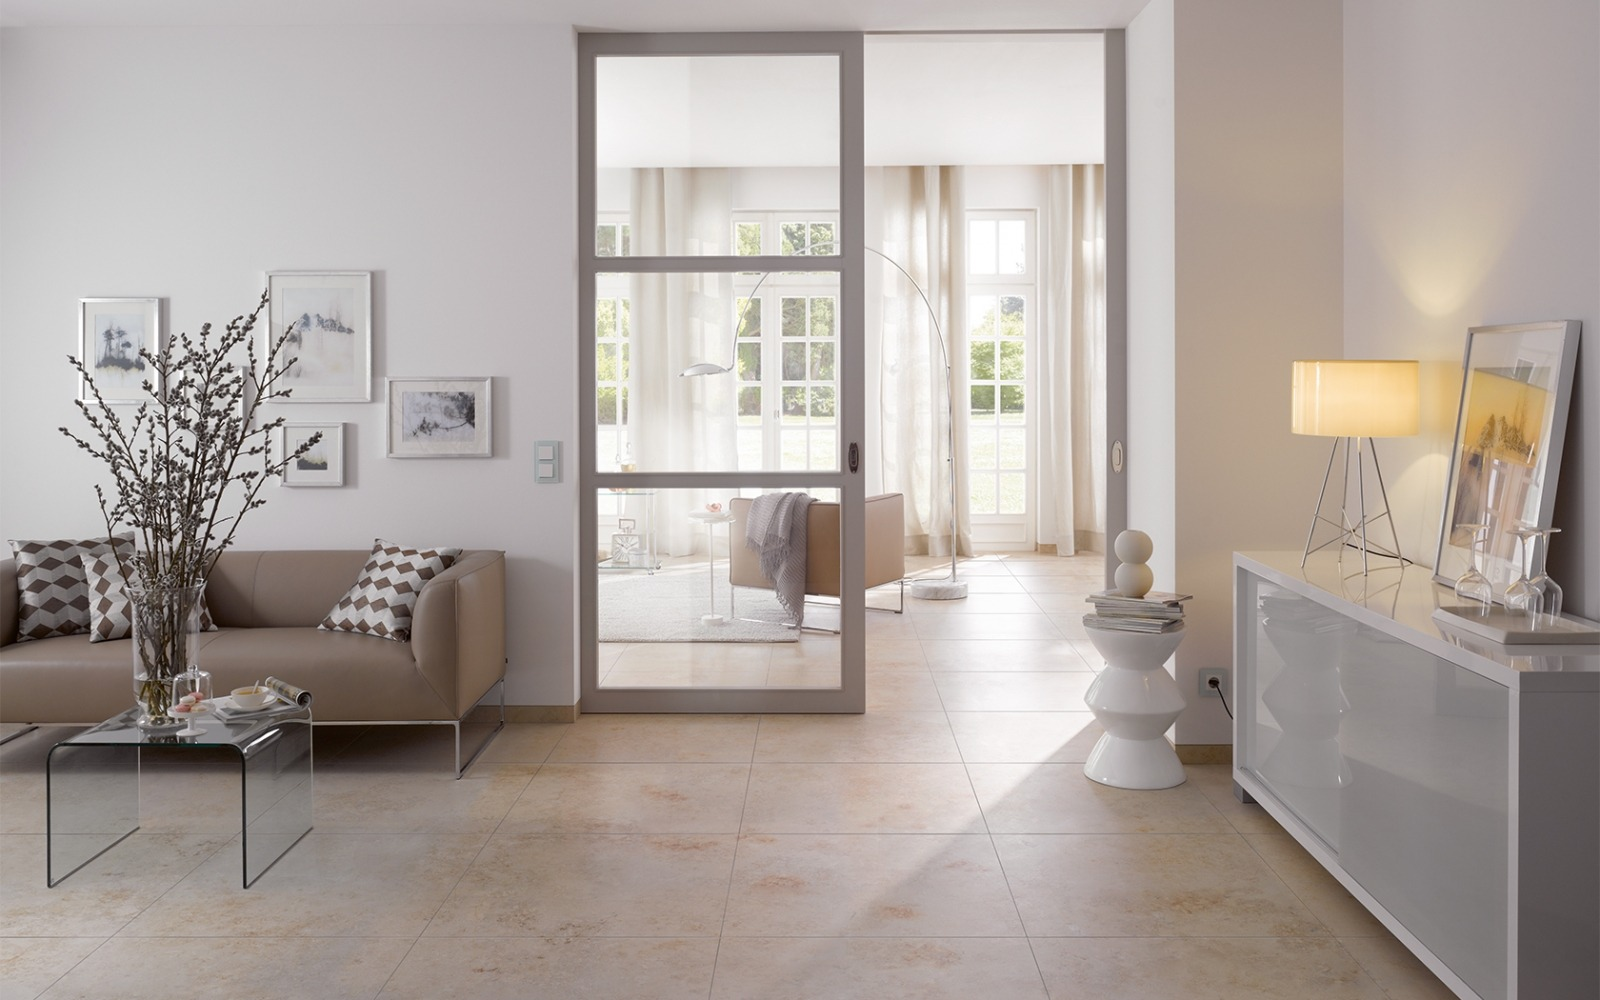 LIMESTONE: Warmth And Elegance, Now Also Available In 37,5x75 ...